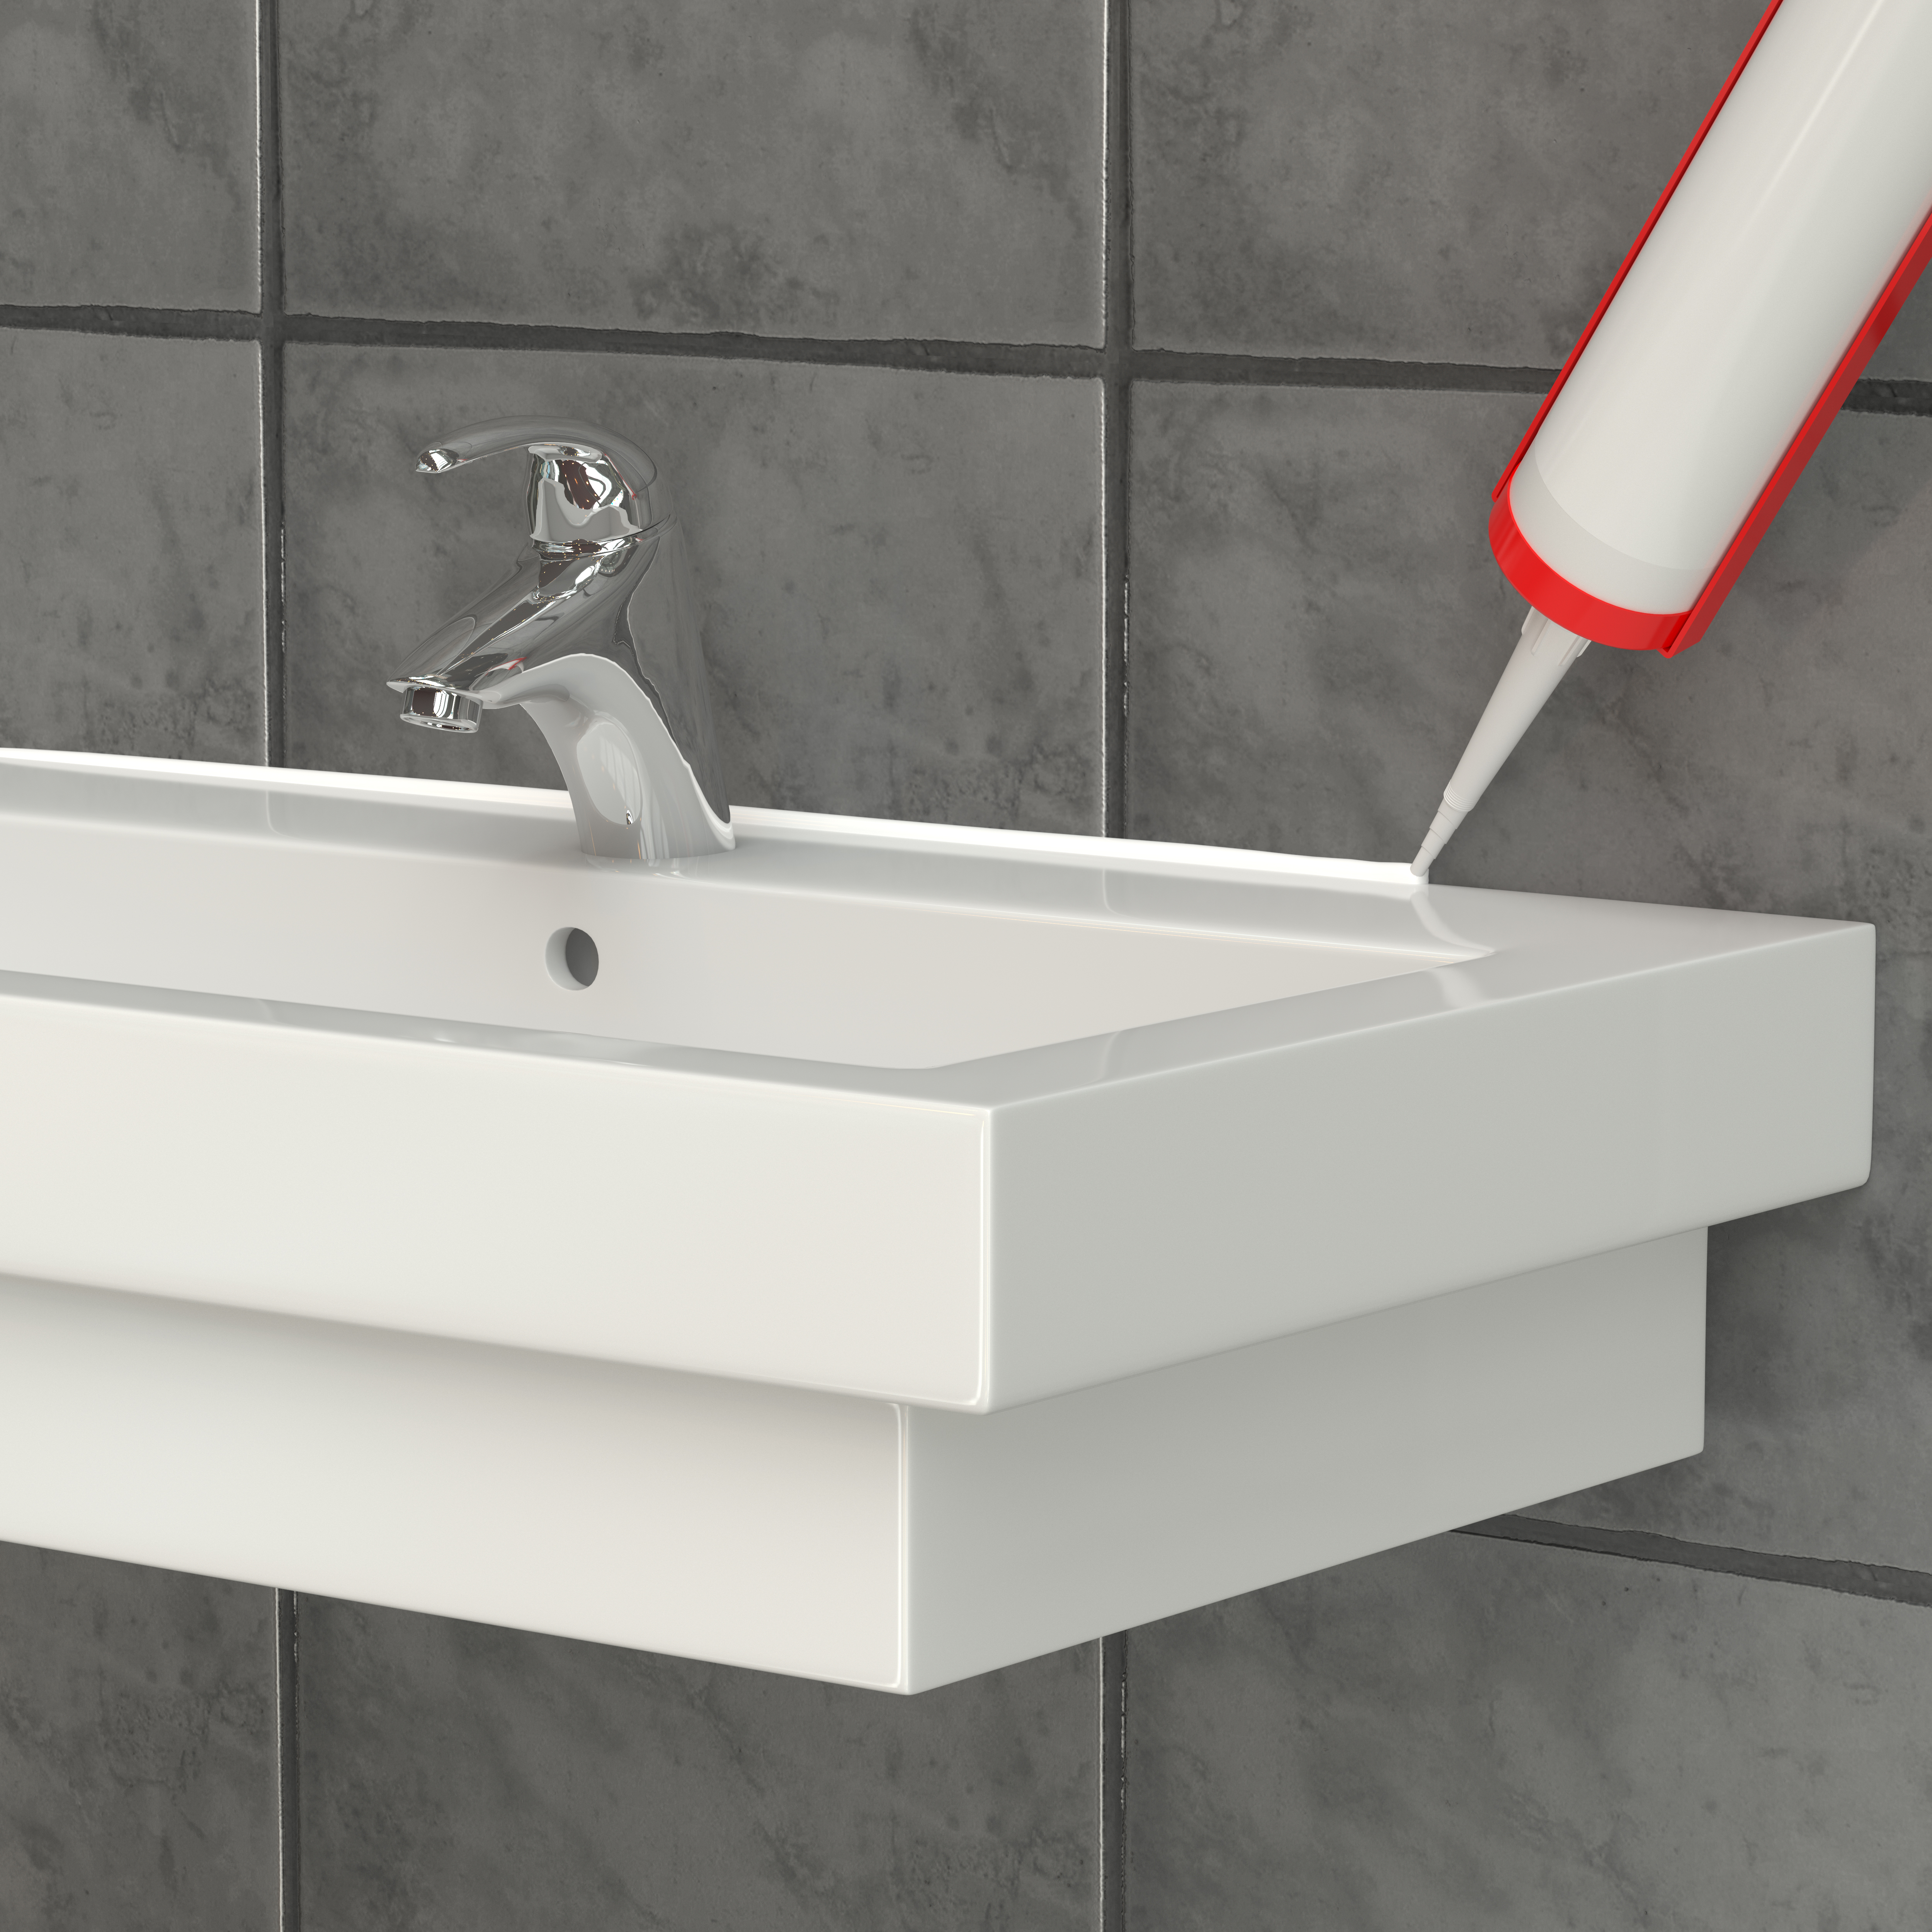 Visualization. The sealant is applied to the washbasin. 3D rendering